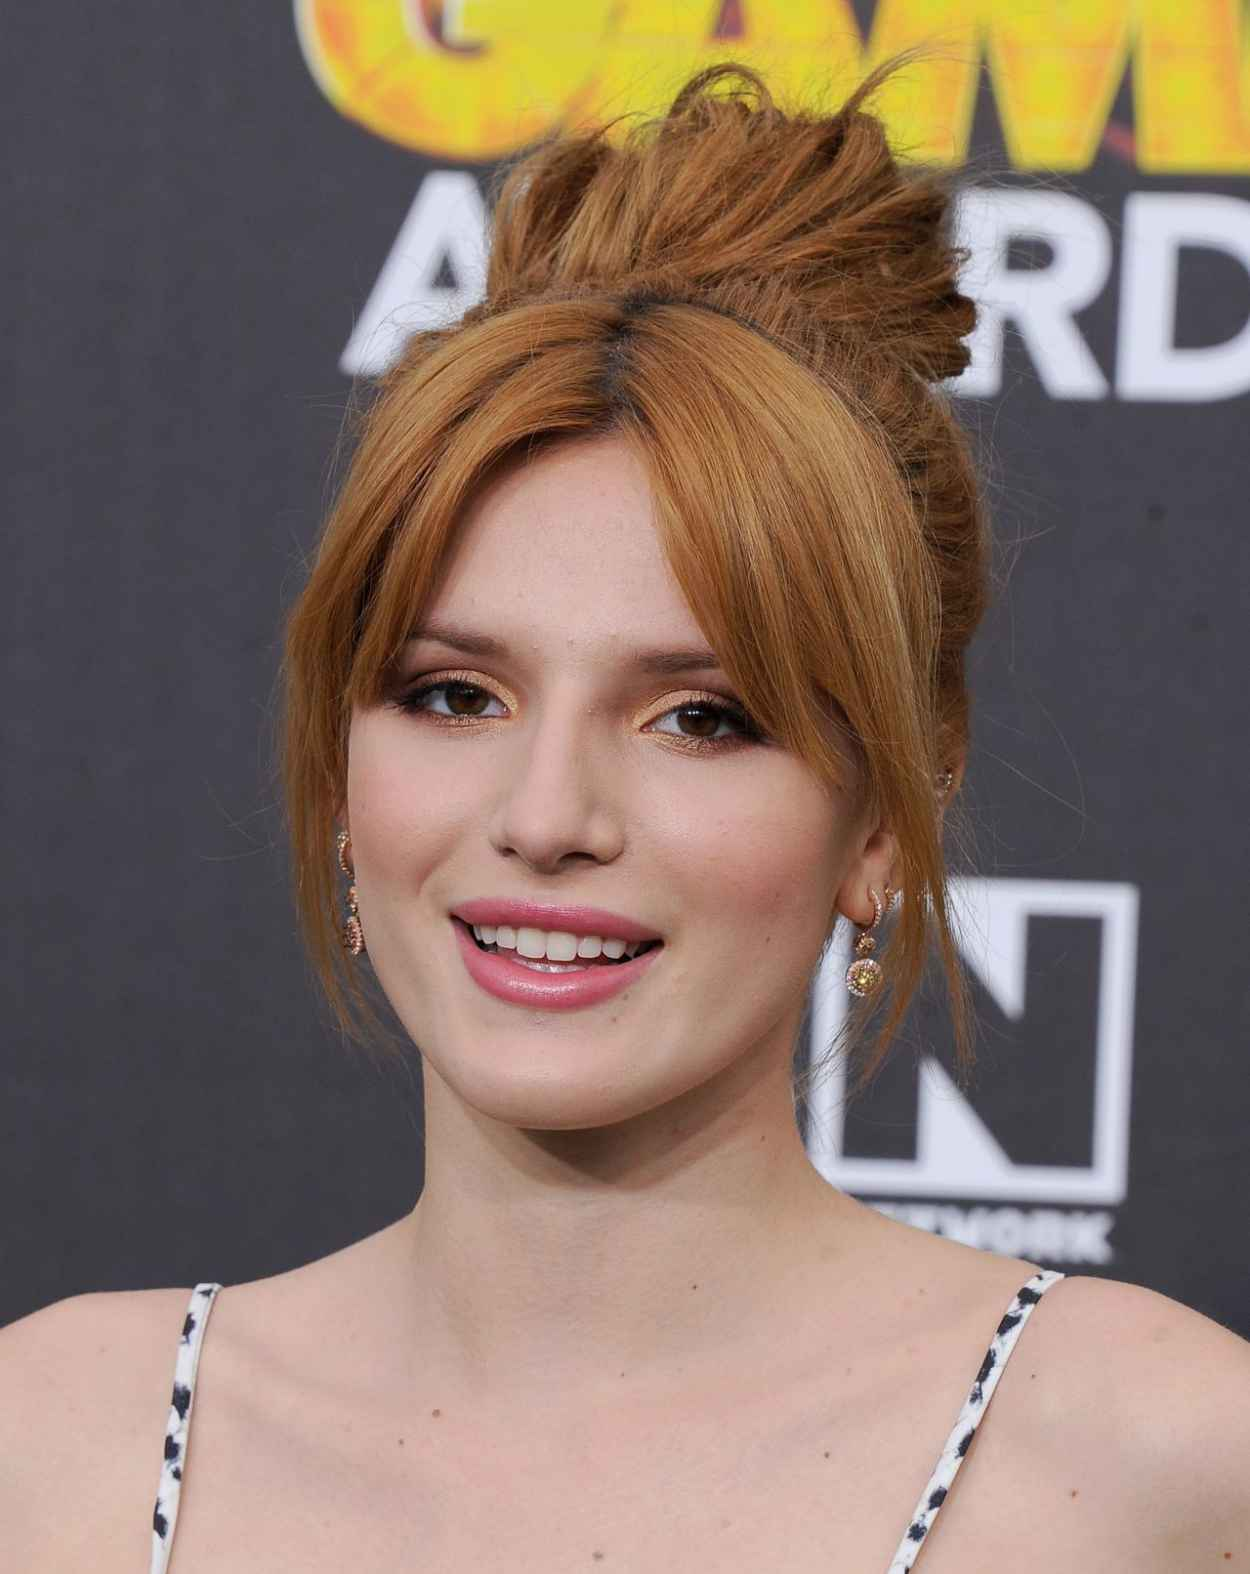 Bella Thorne - 4th Annual Hall of Game Awards in Santa Monica - February 2015-2